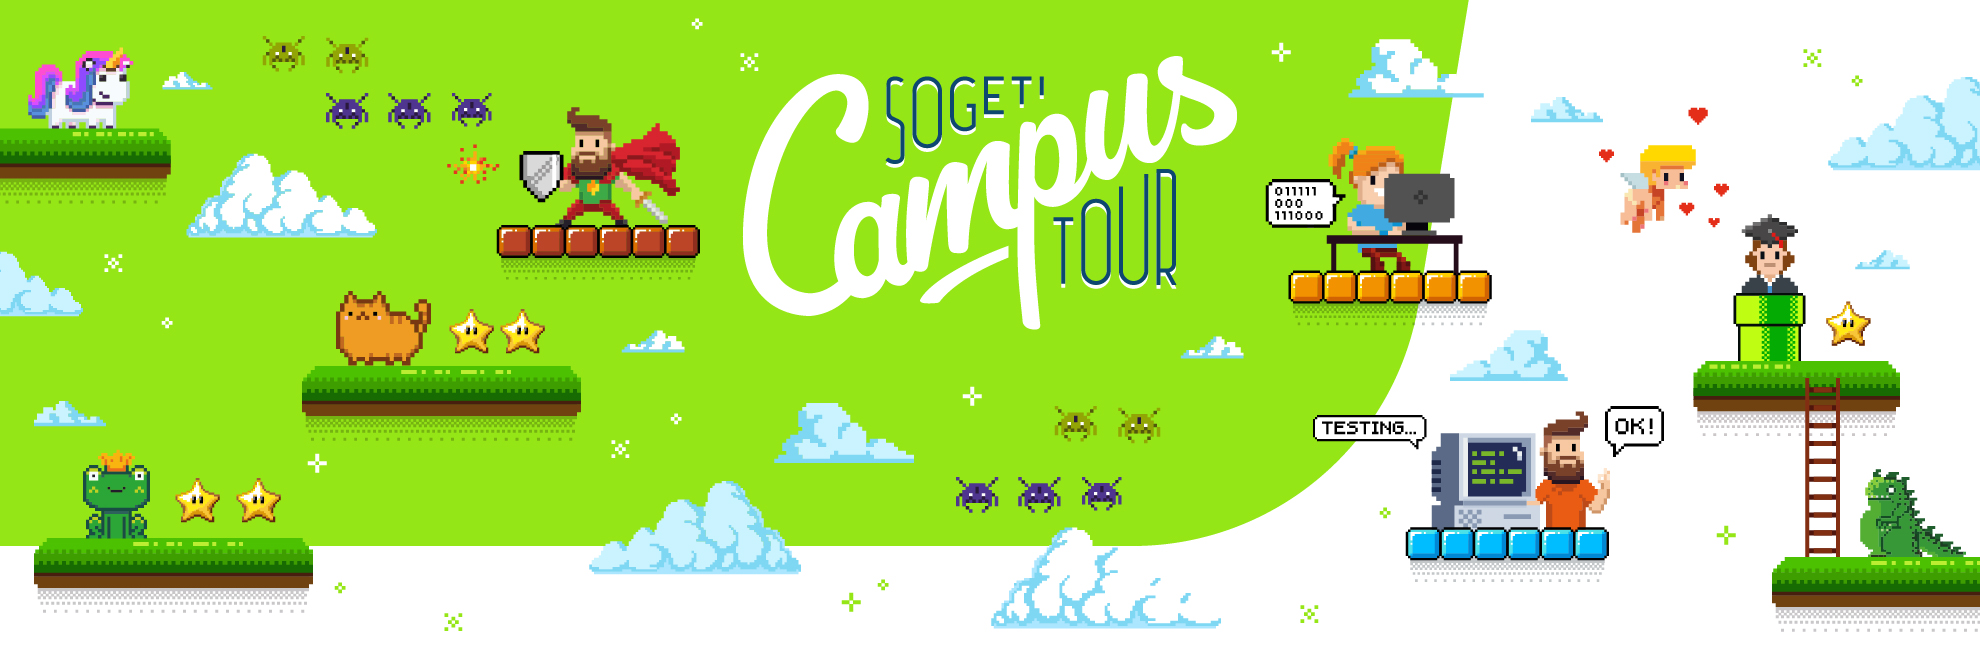 Sogeti Campus Tour 2018